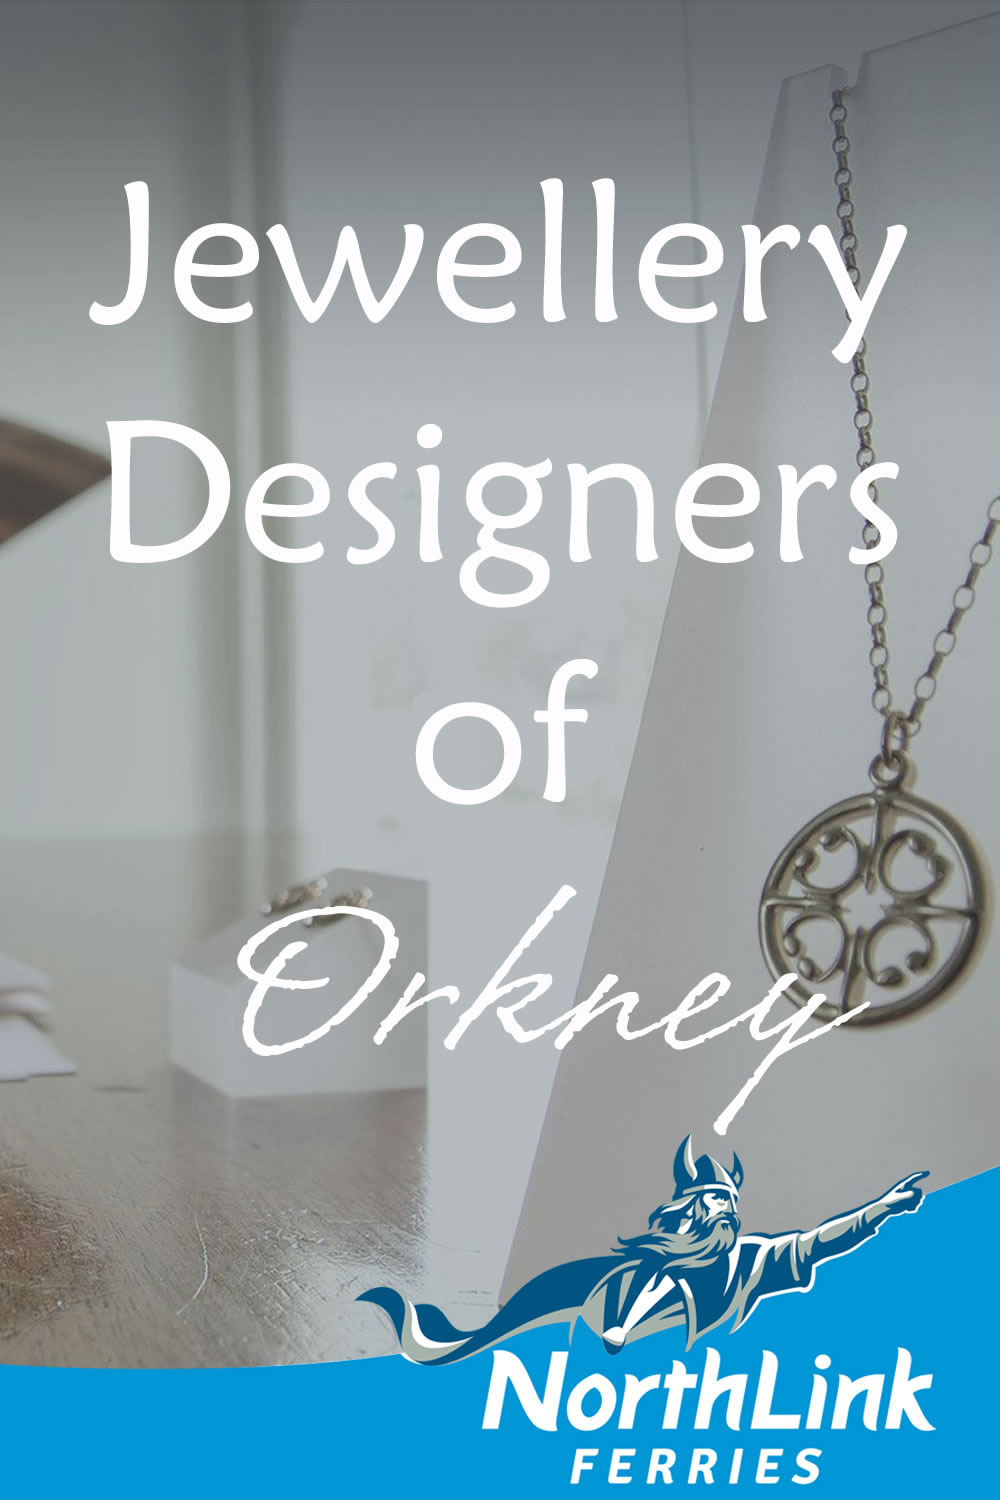 Jewellery Designers of Orkney